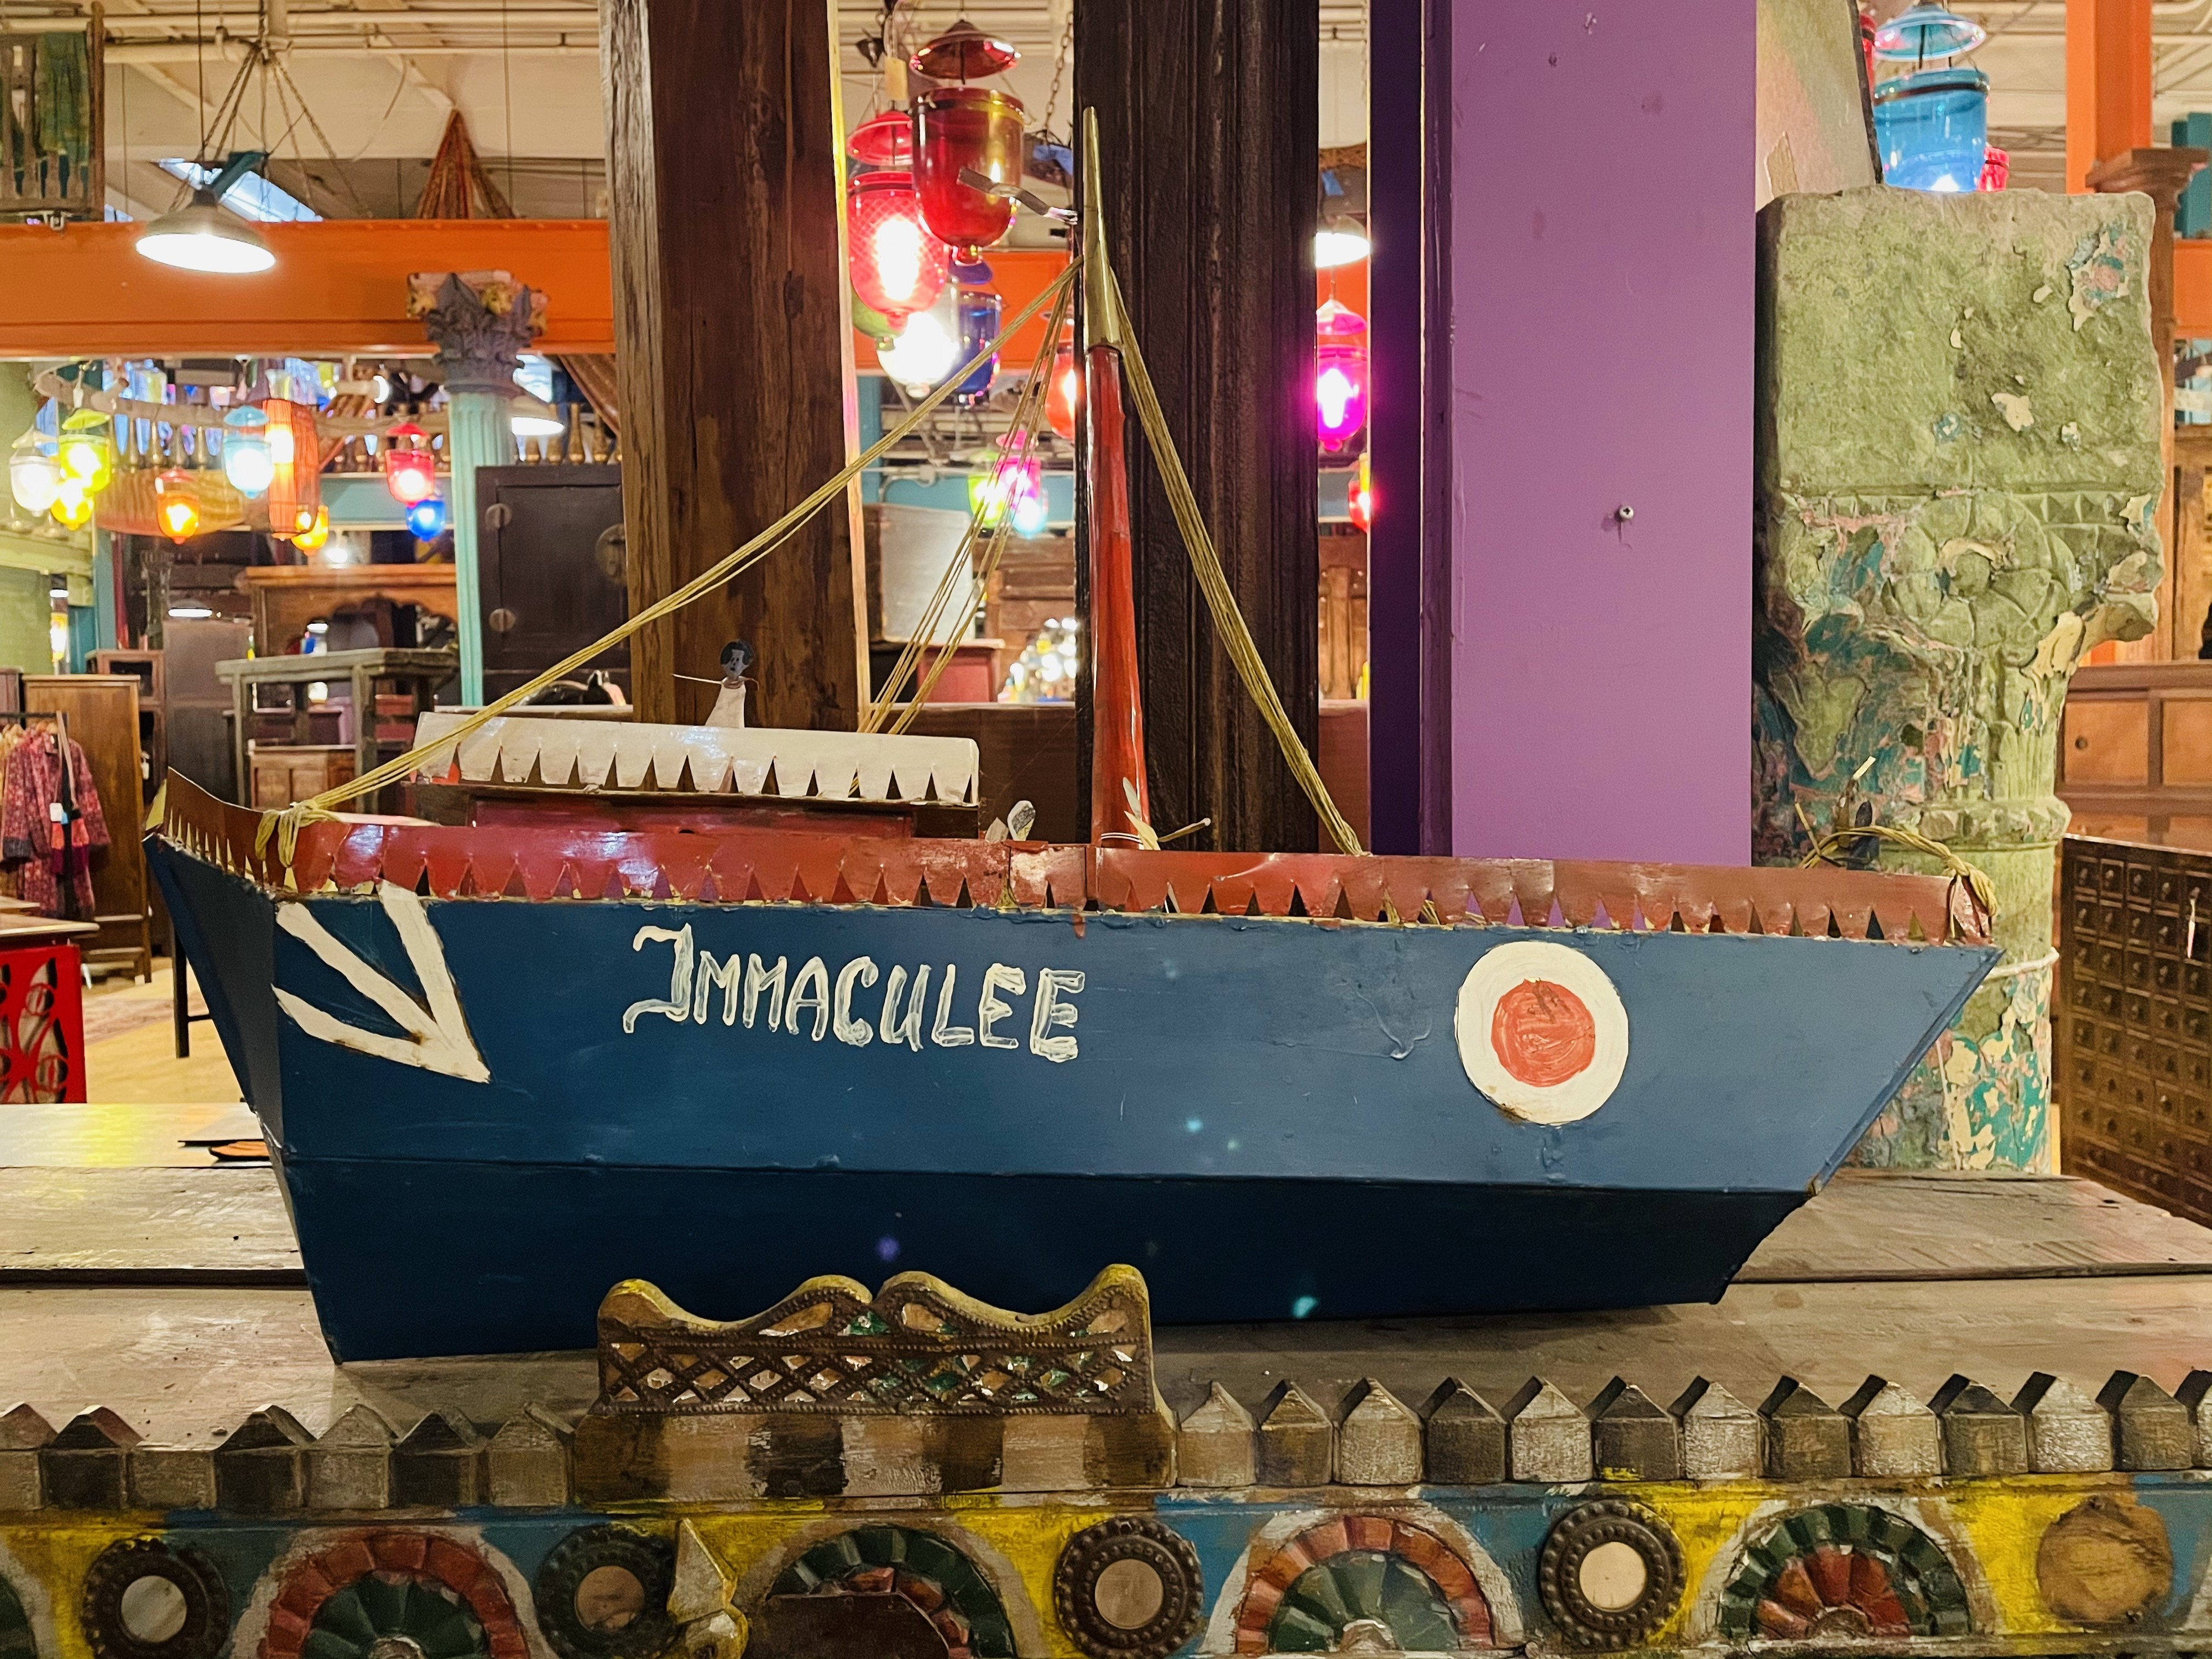 A folk-art boat on a shelf in a colorful room. The boat's name is painted on the hull: Immaculee